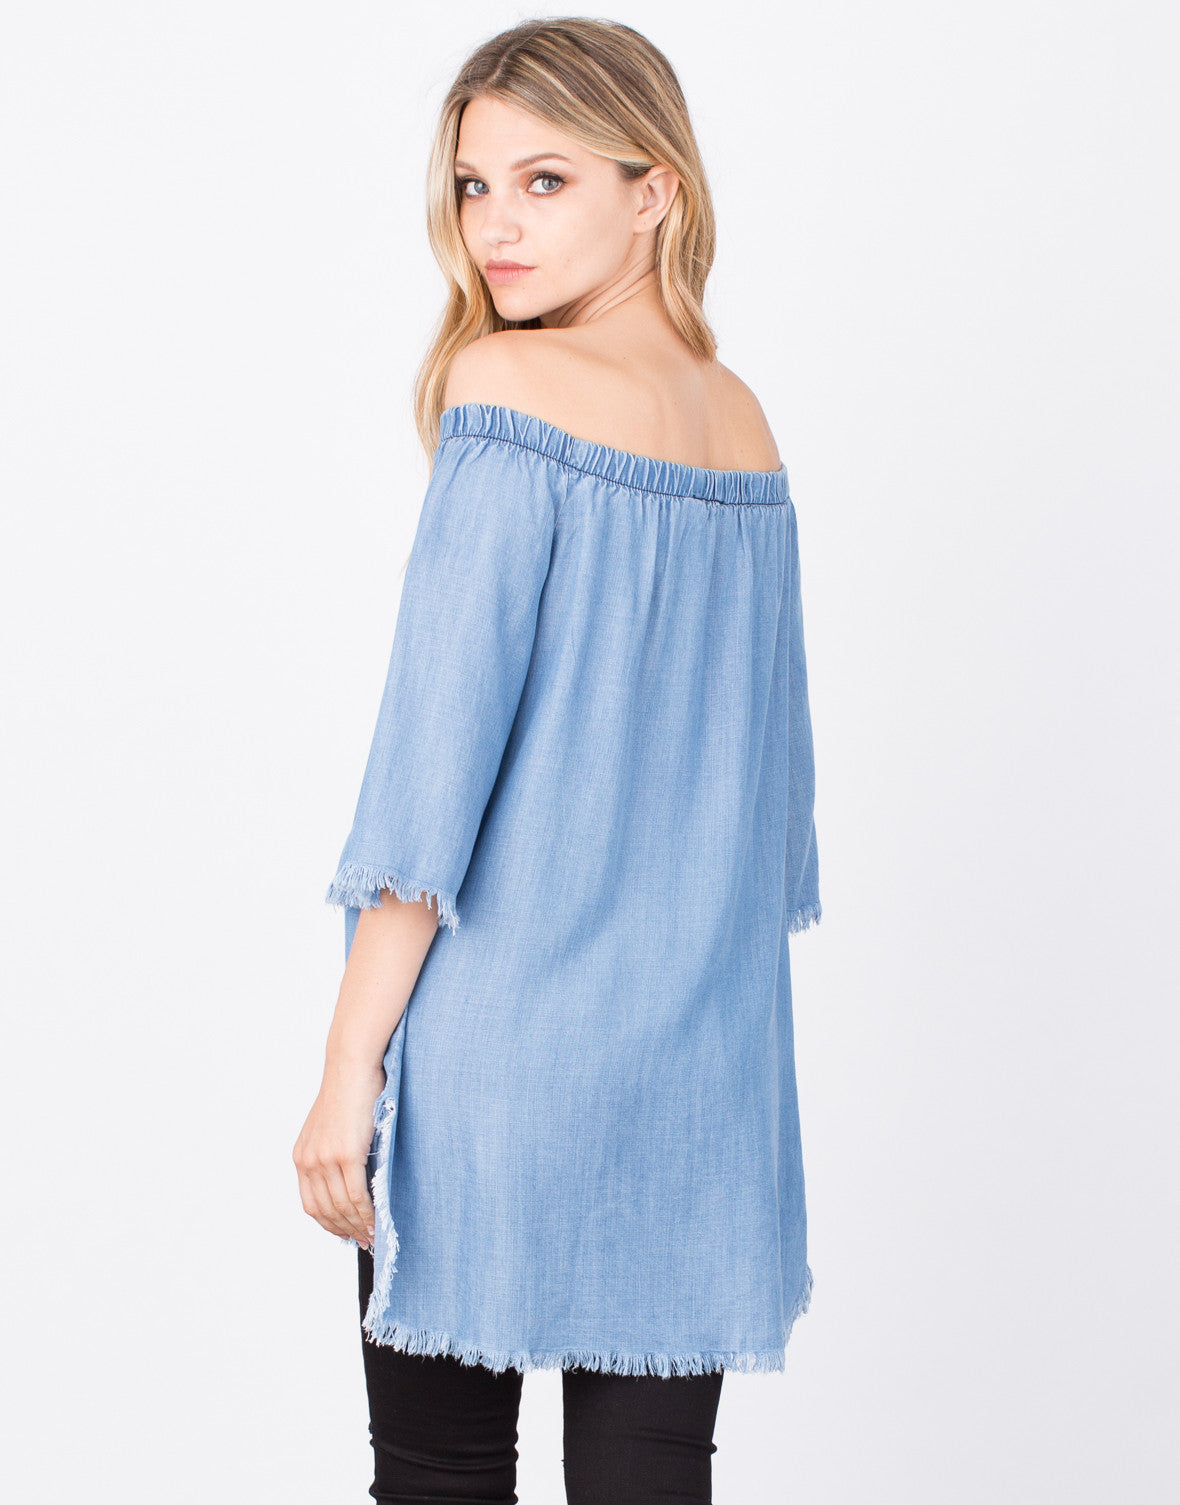 Back View of Frayed Denim Tunic Top